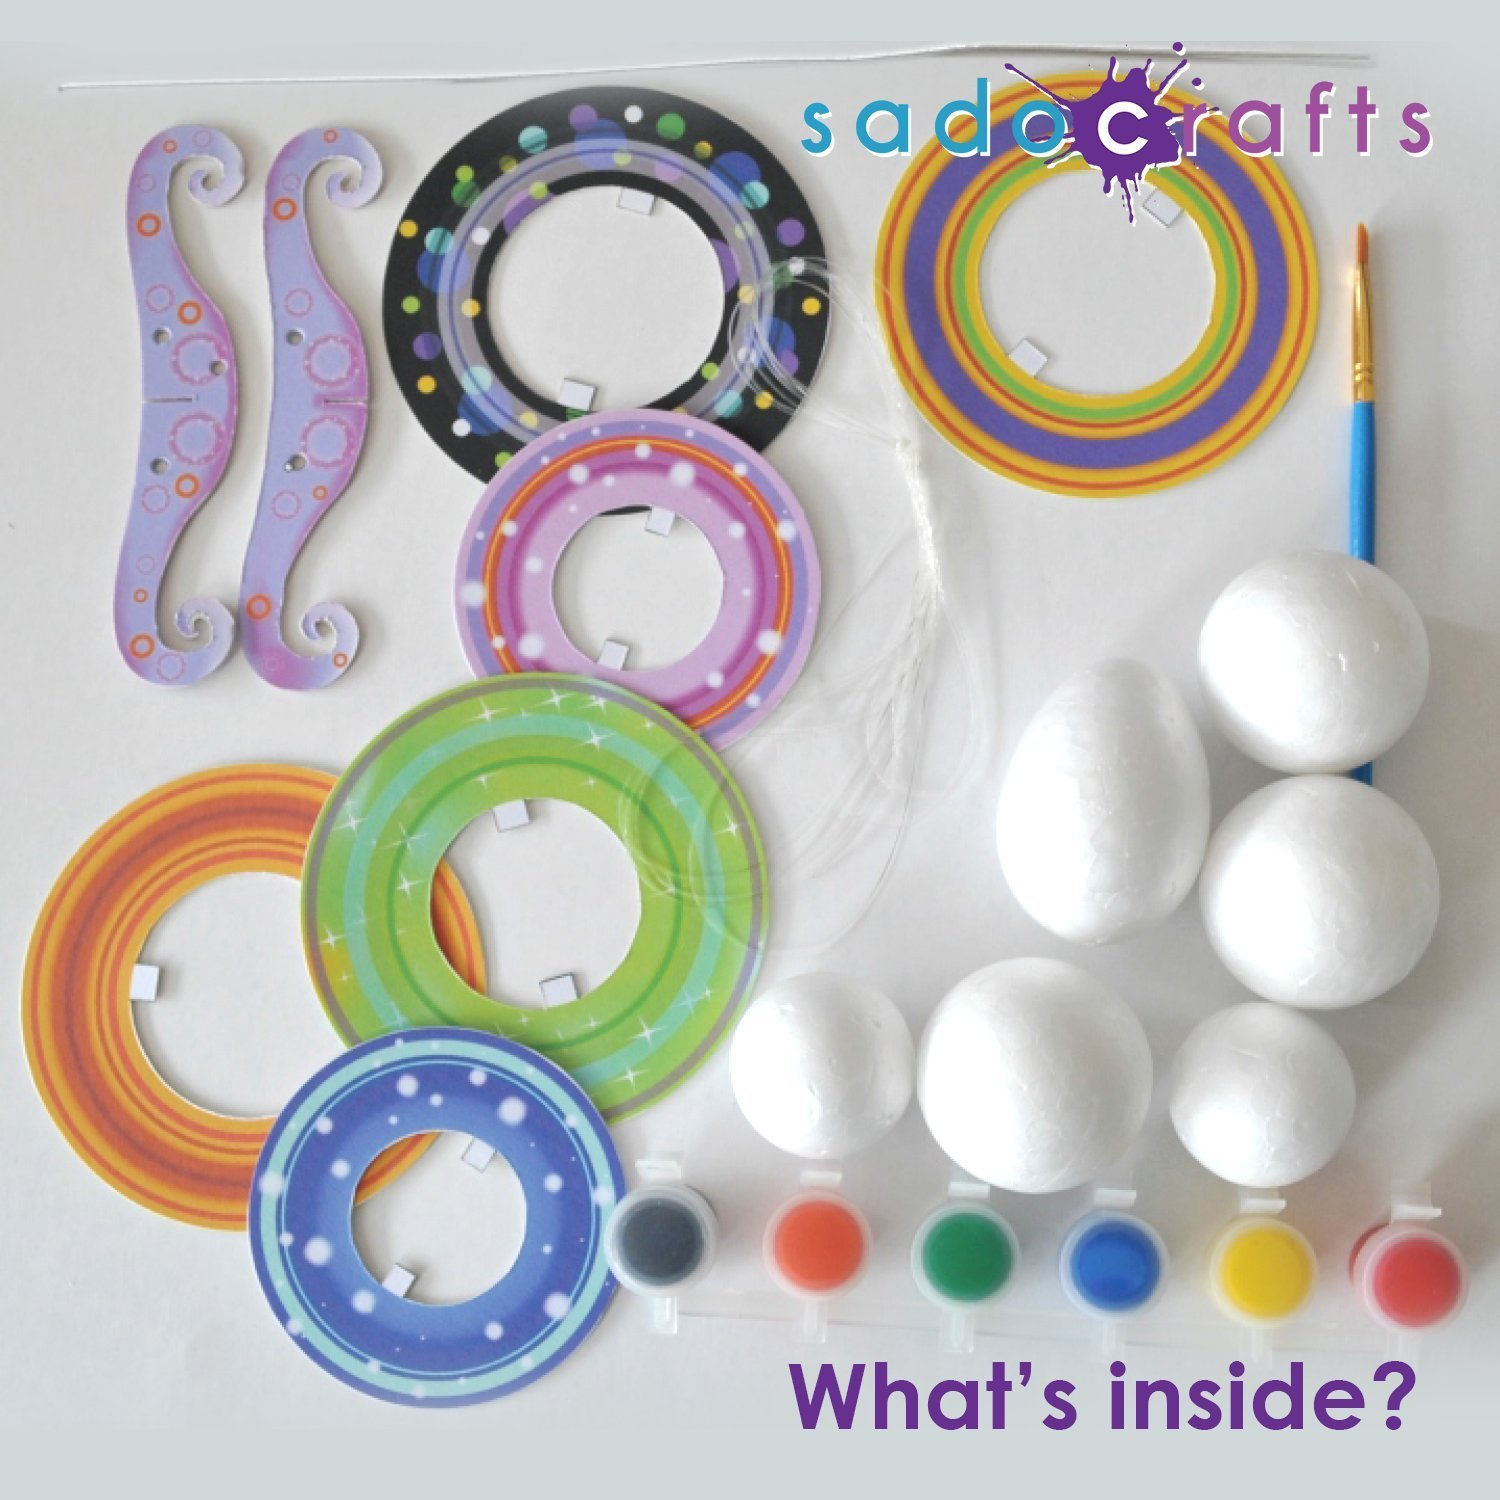 SadoCrafts Create Your Own Planets - Fun Interactive Educational DIY Painting Craft Kit for Kids